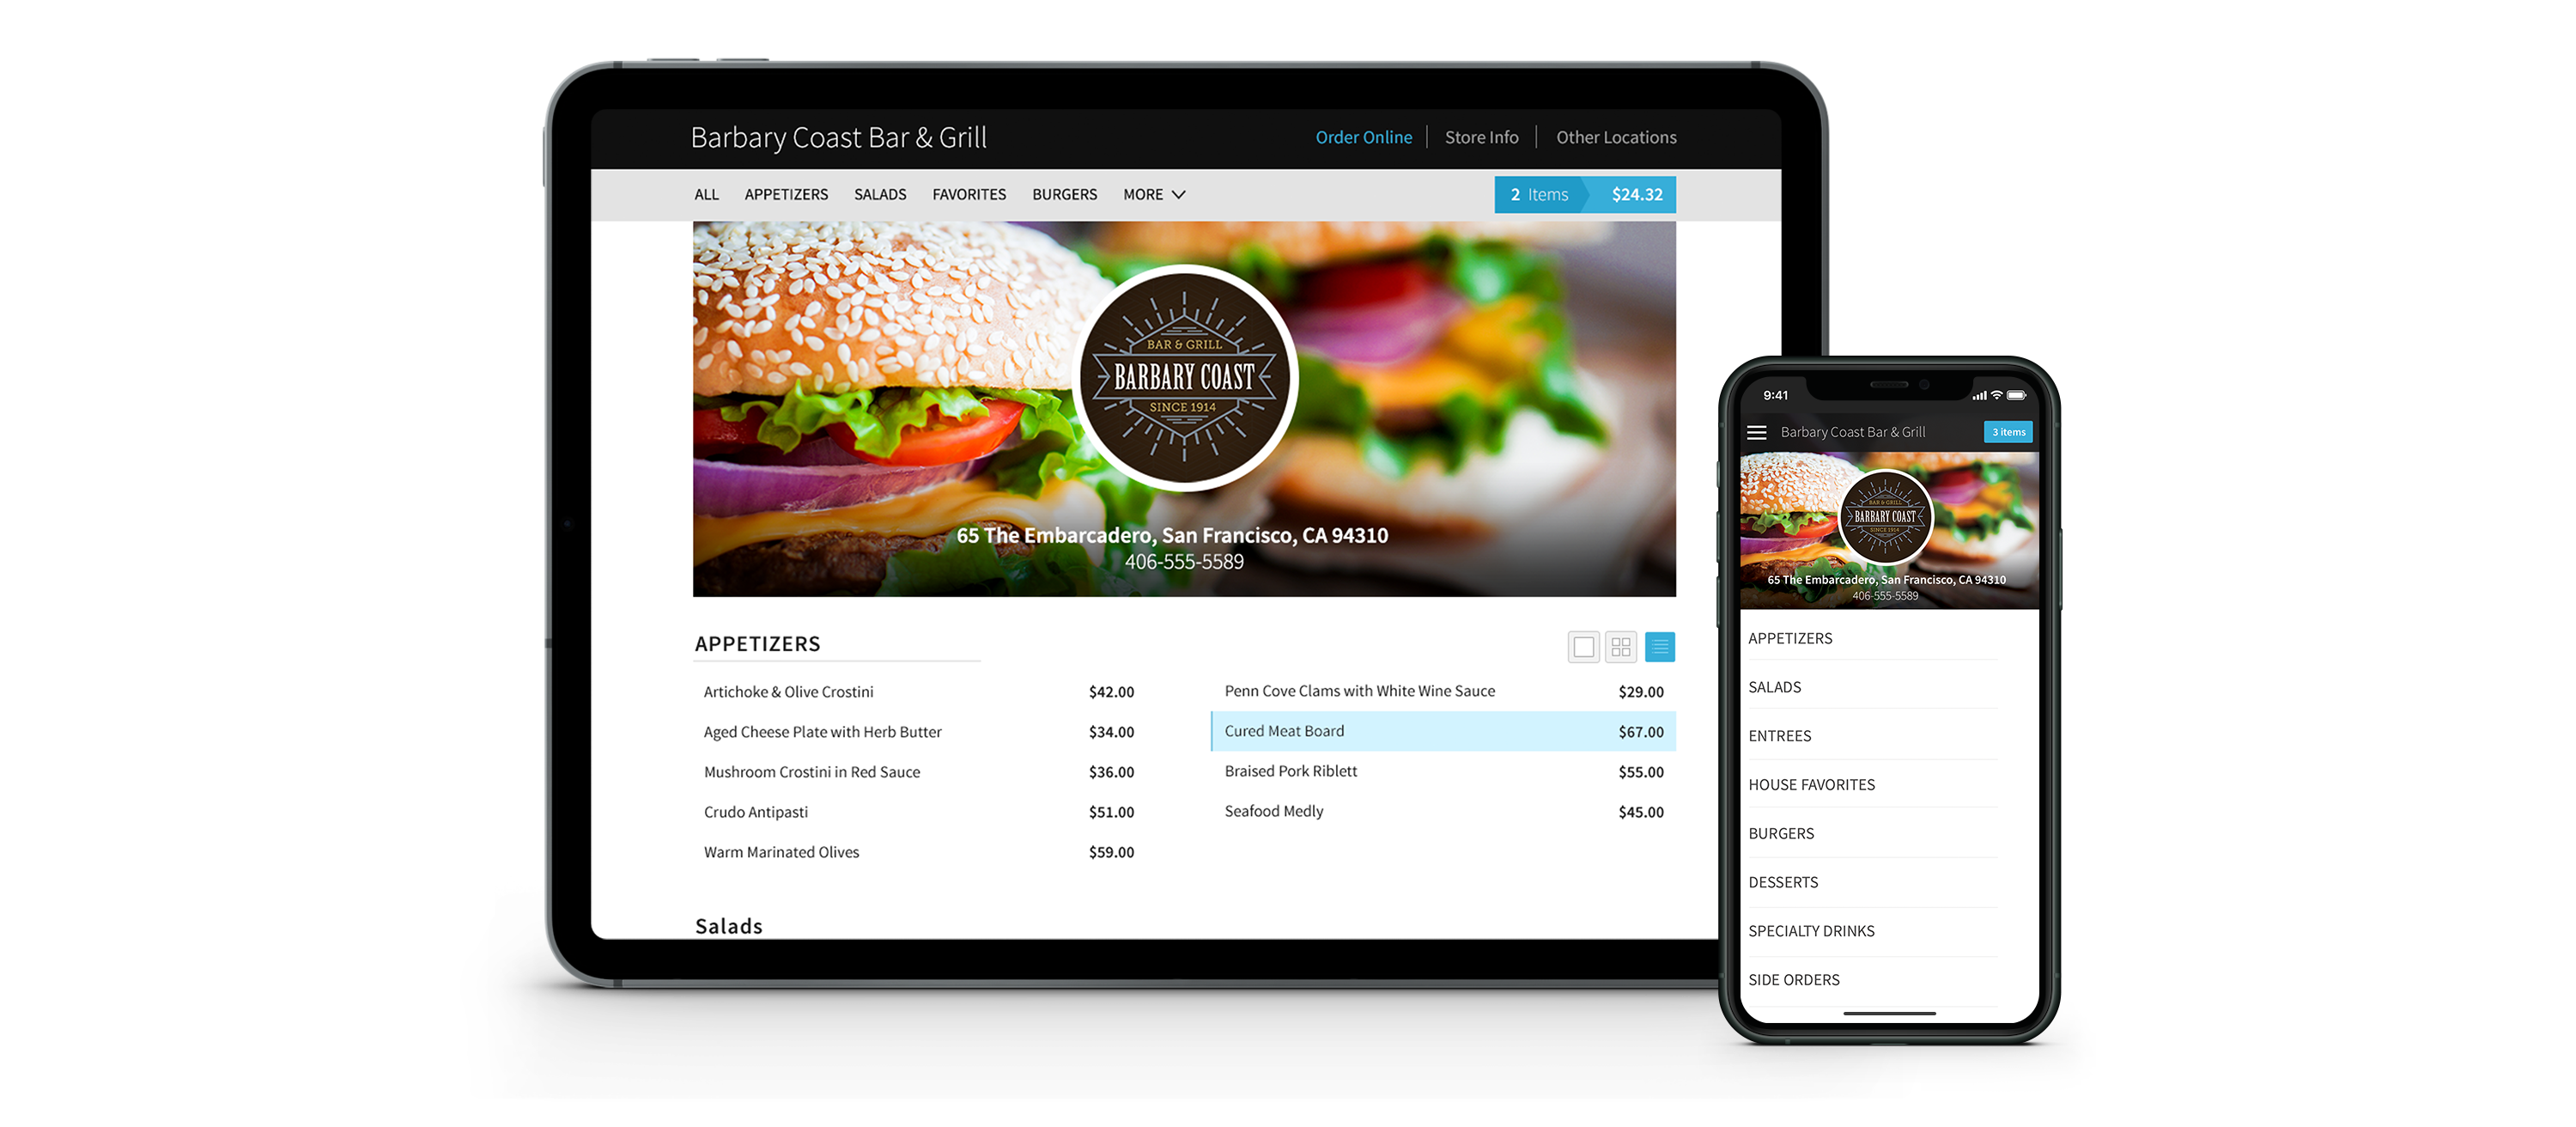 An iPad and smartphone device displaying online ordering screens